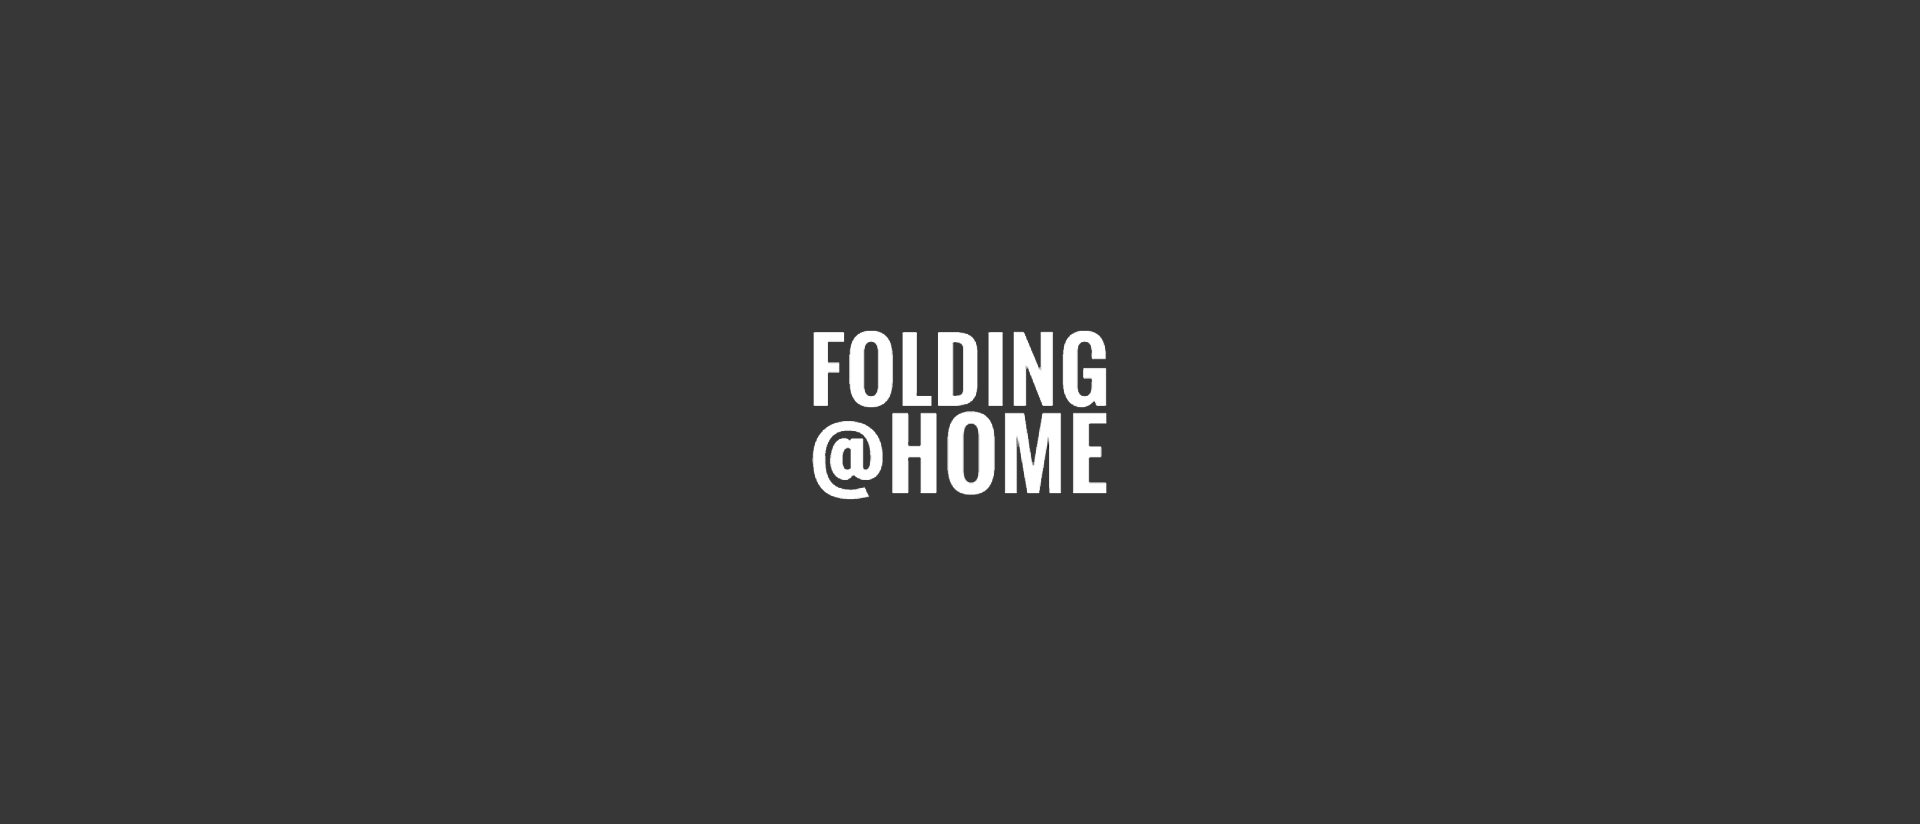 folding-at-home-png.2793